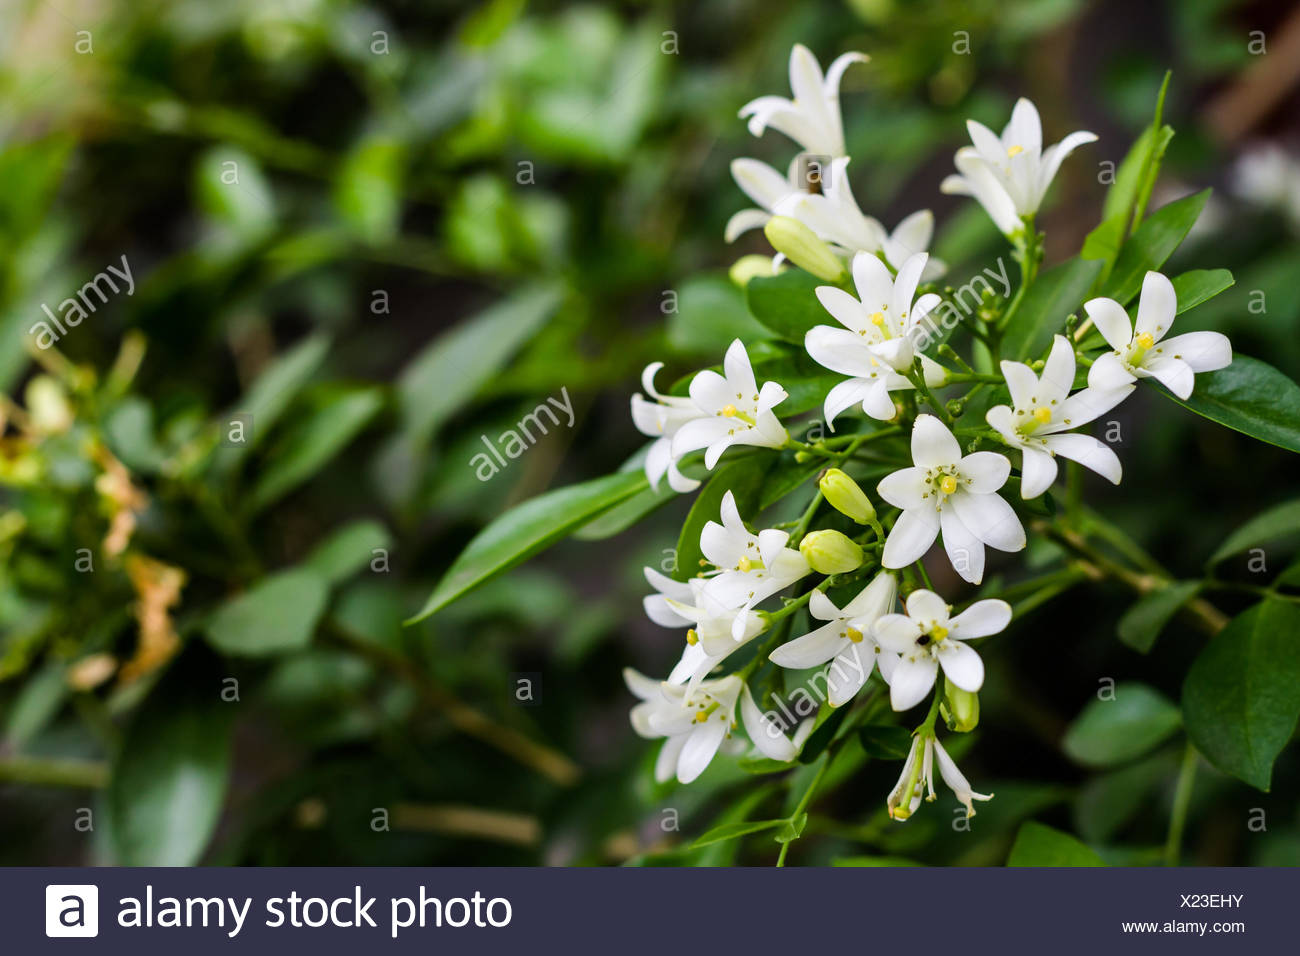 Scent of asian exotic flower stock photos scent of asian exotic white flowers stock image izmirmasajfo